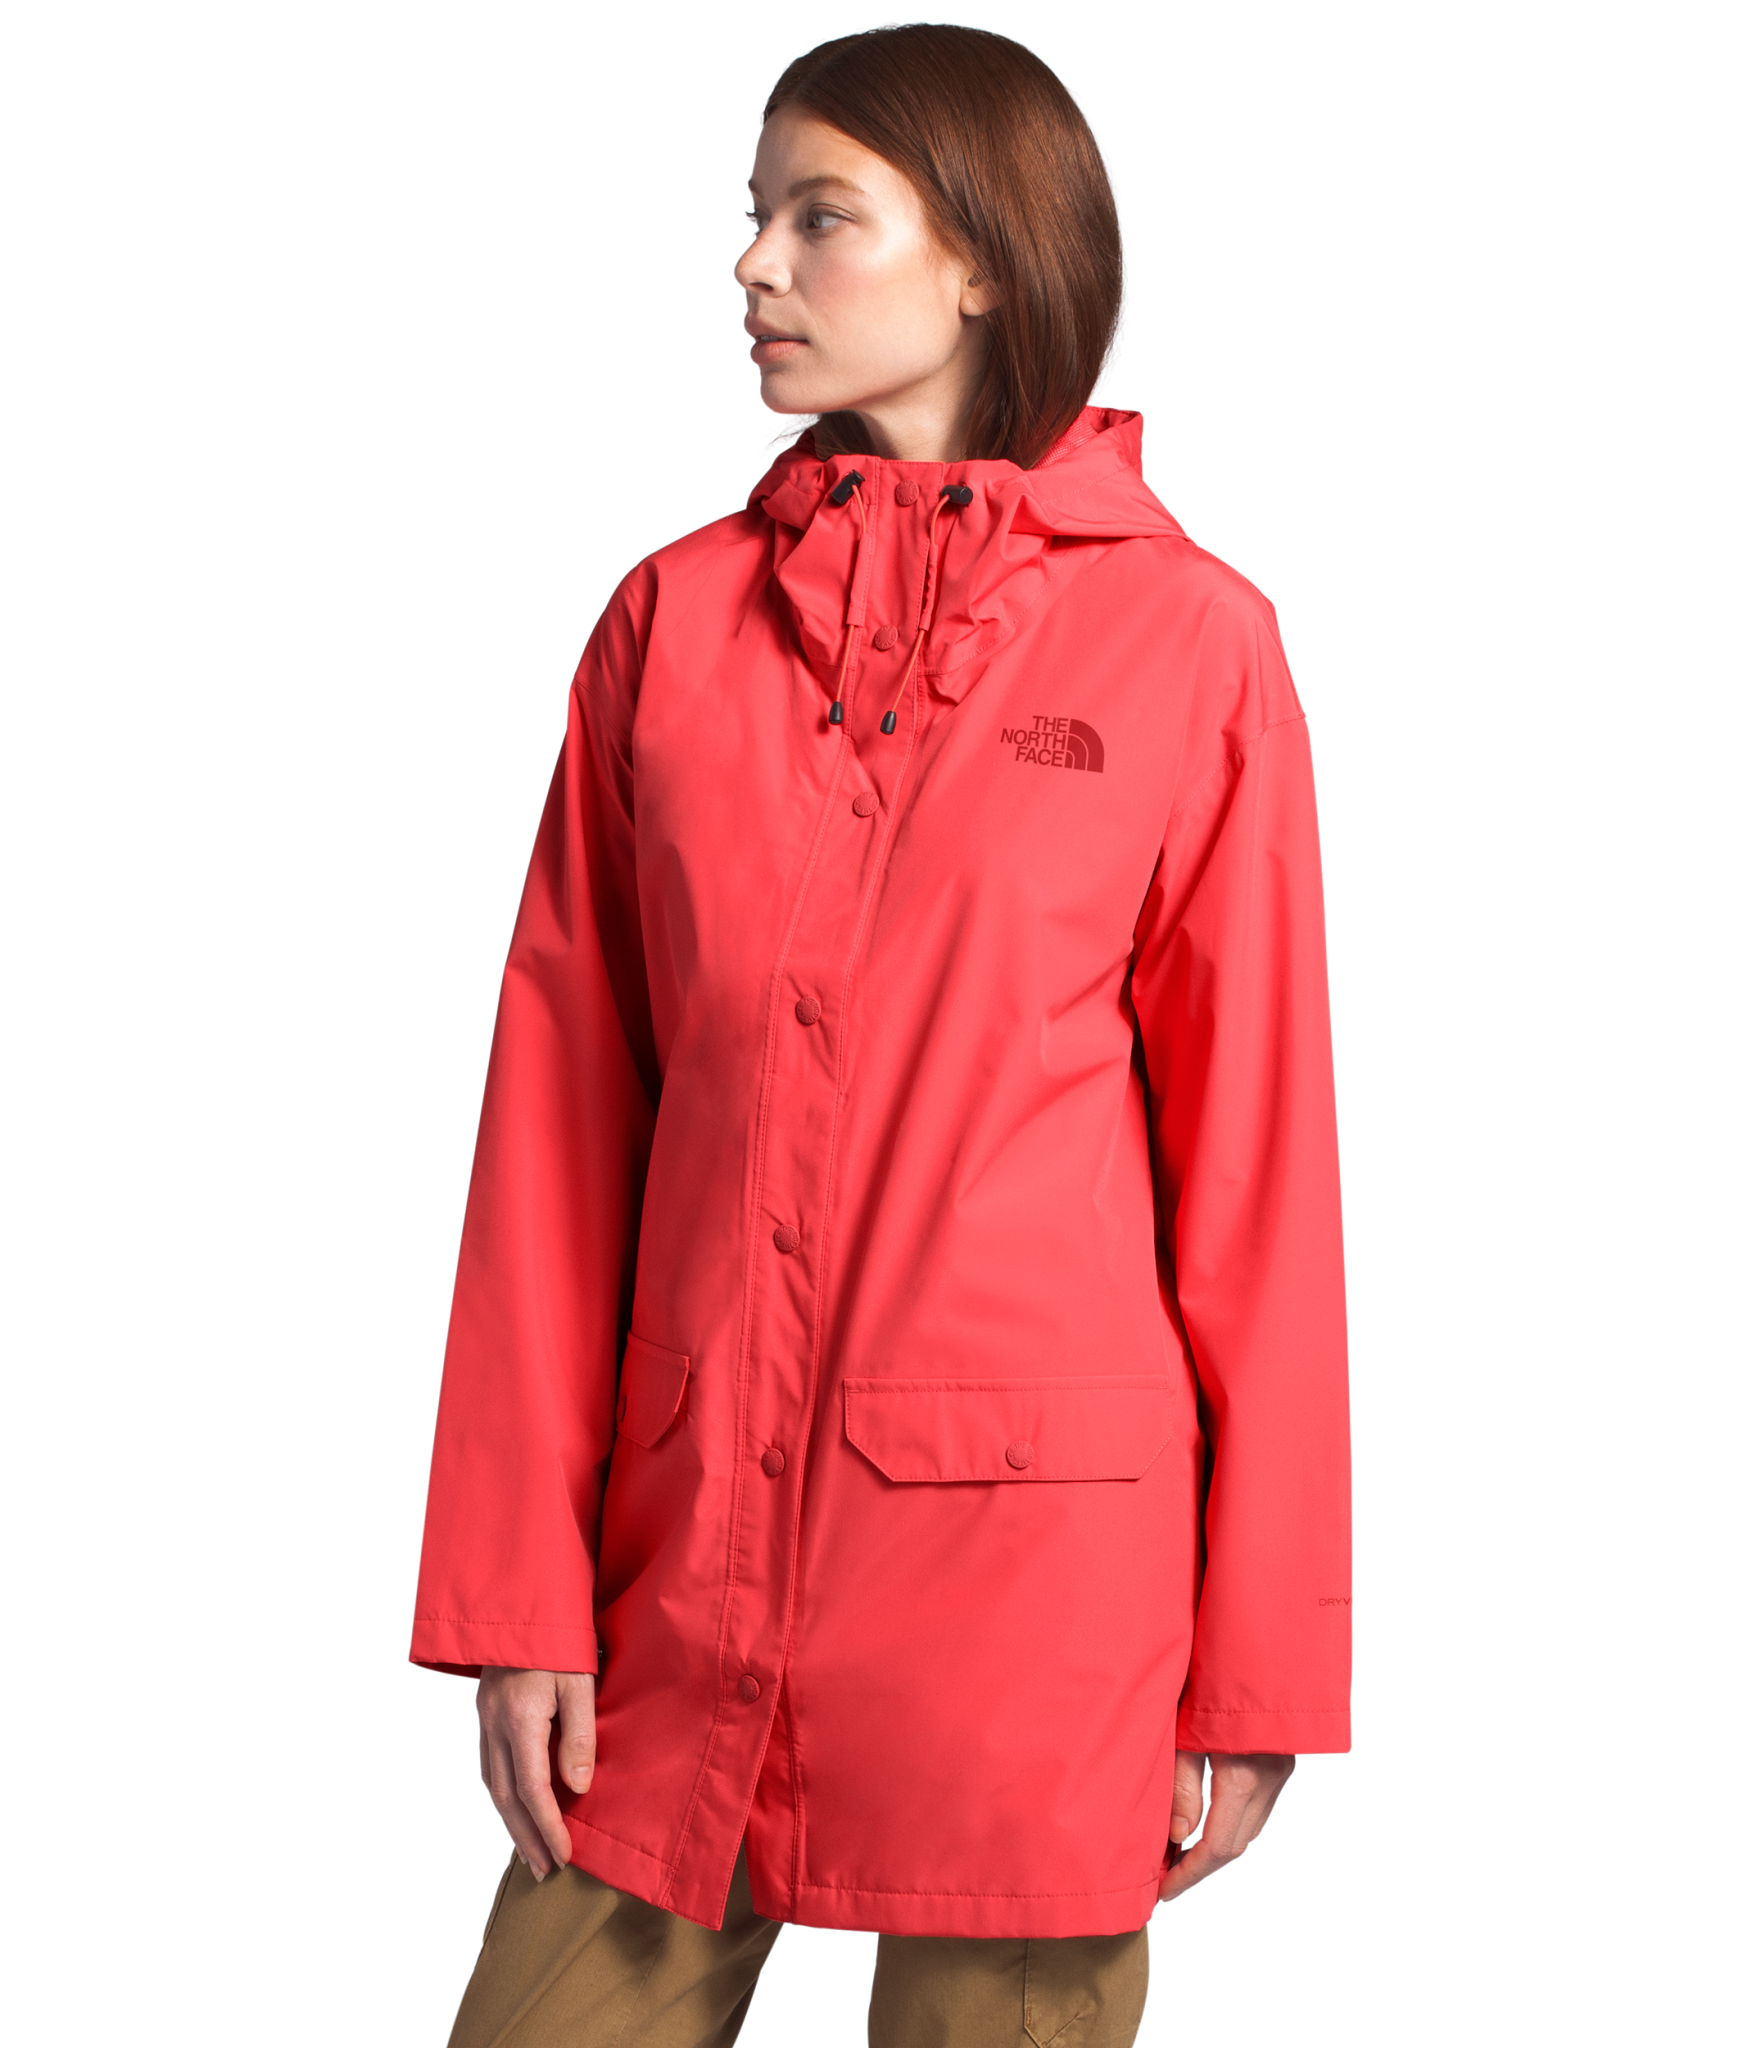 TNF Woodmont Women's Rain Jacket-4